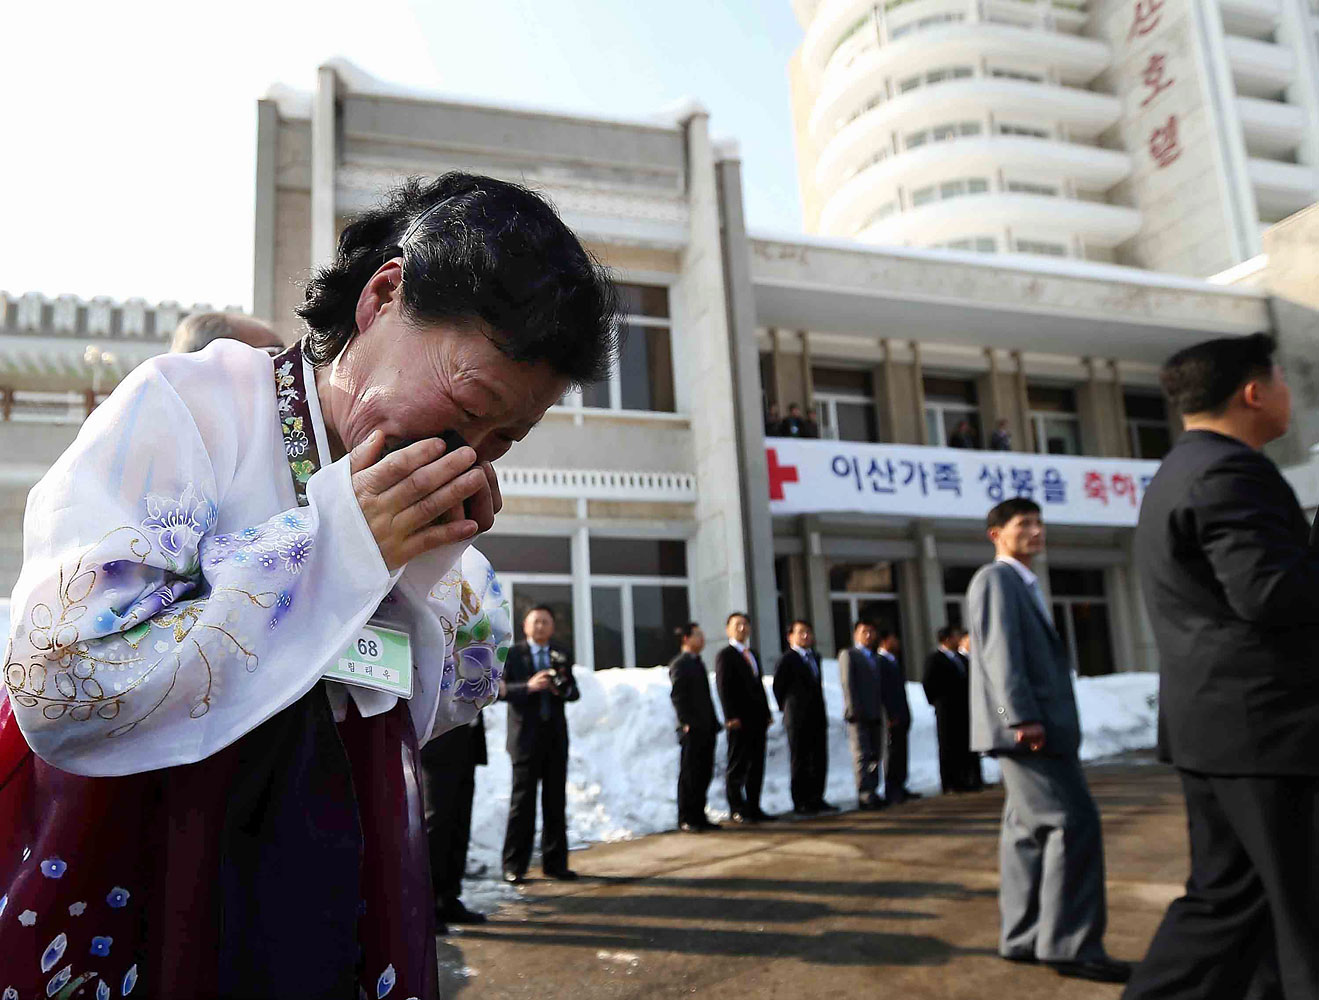 Lim Tae-Wook, a North Korean woman, sobs as she leaves her South Korean older brother after a separated family reunion meeting at Mount Kumgang resort, North Korea, Feb. 22, 2014.